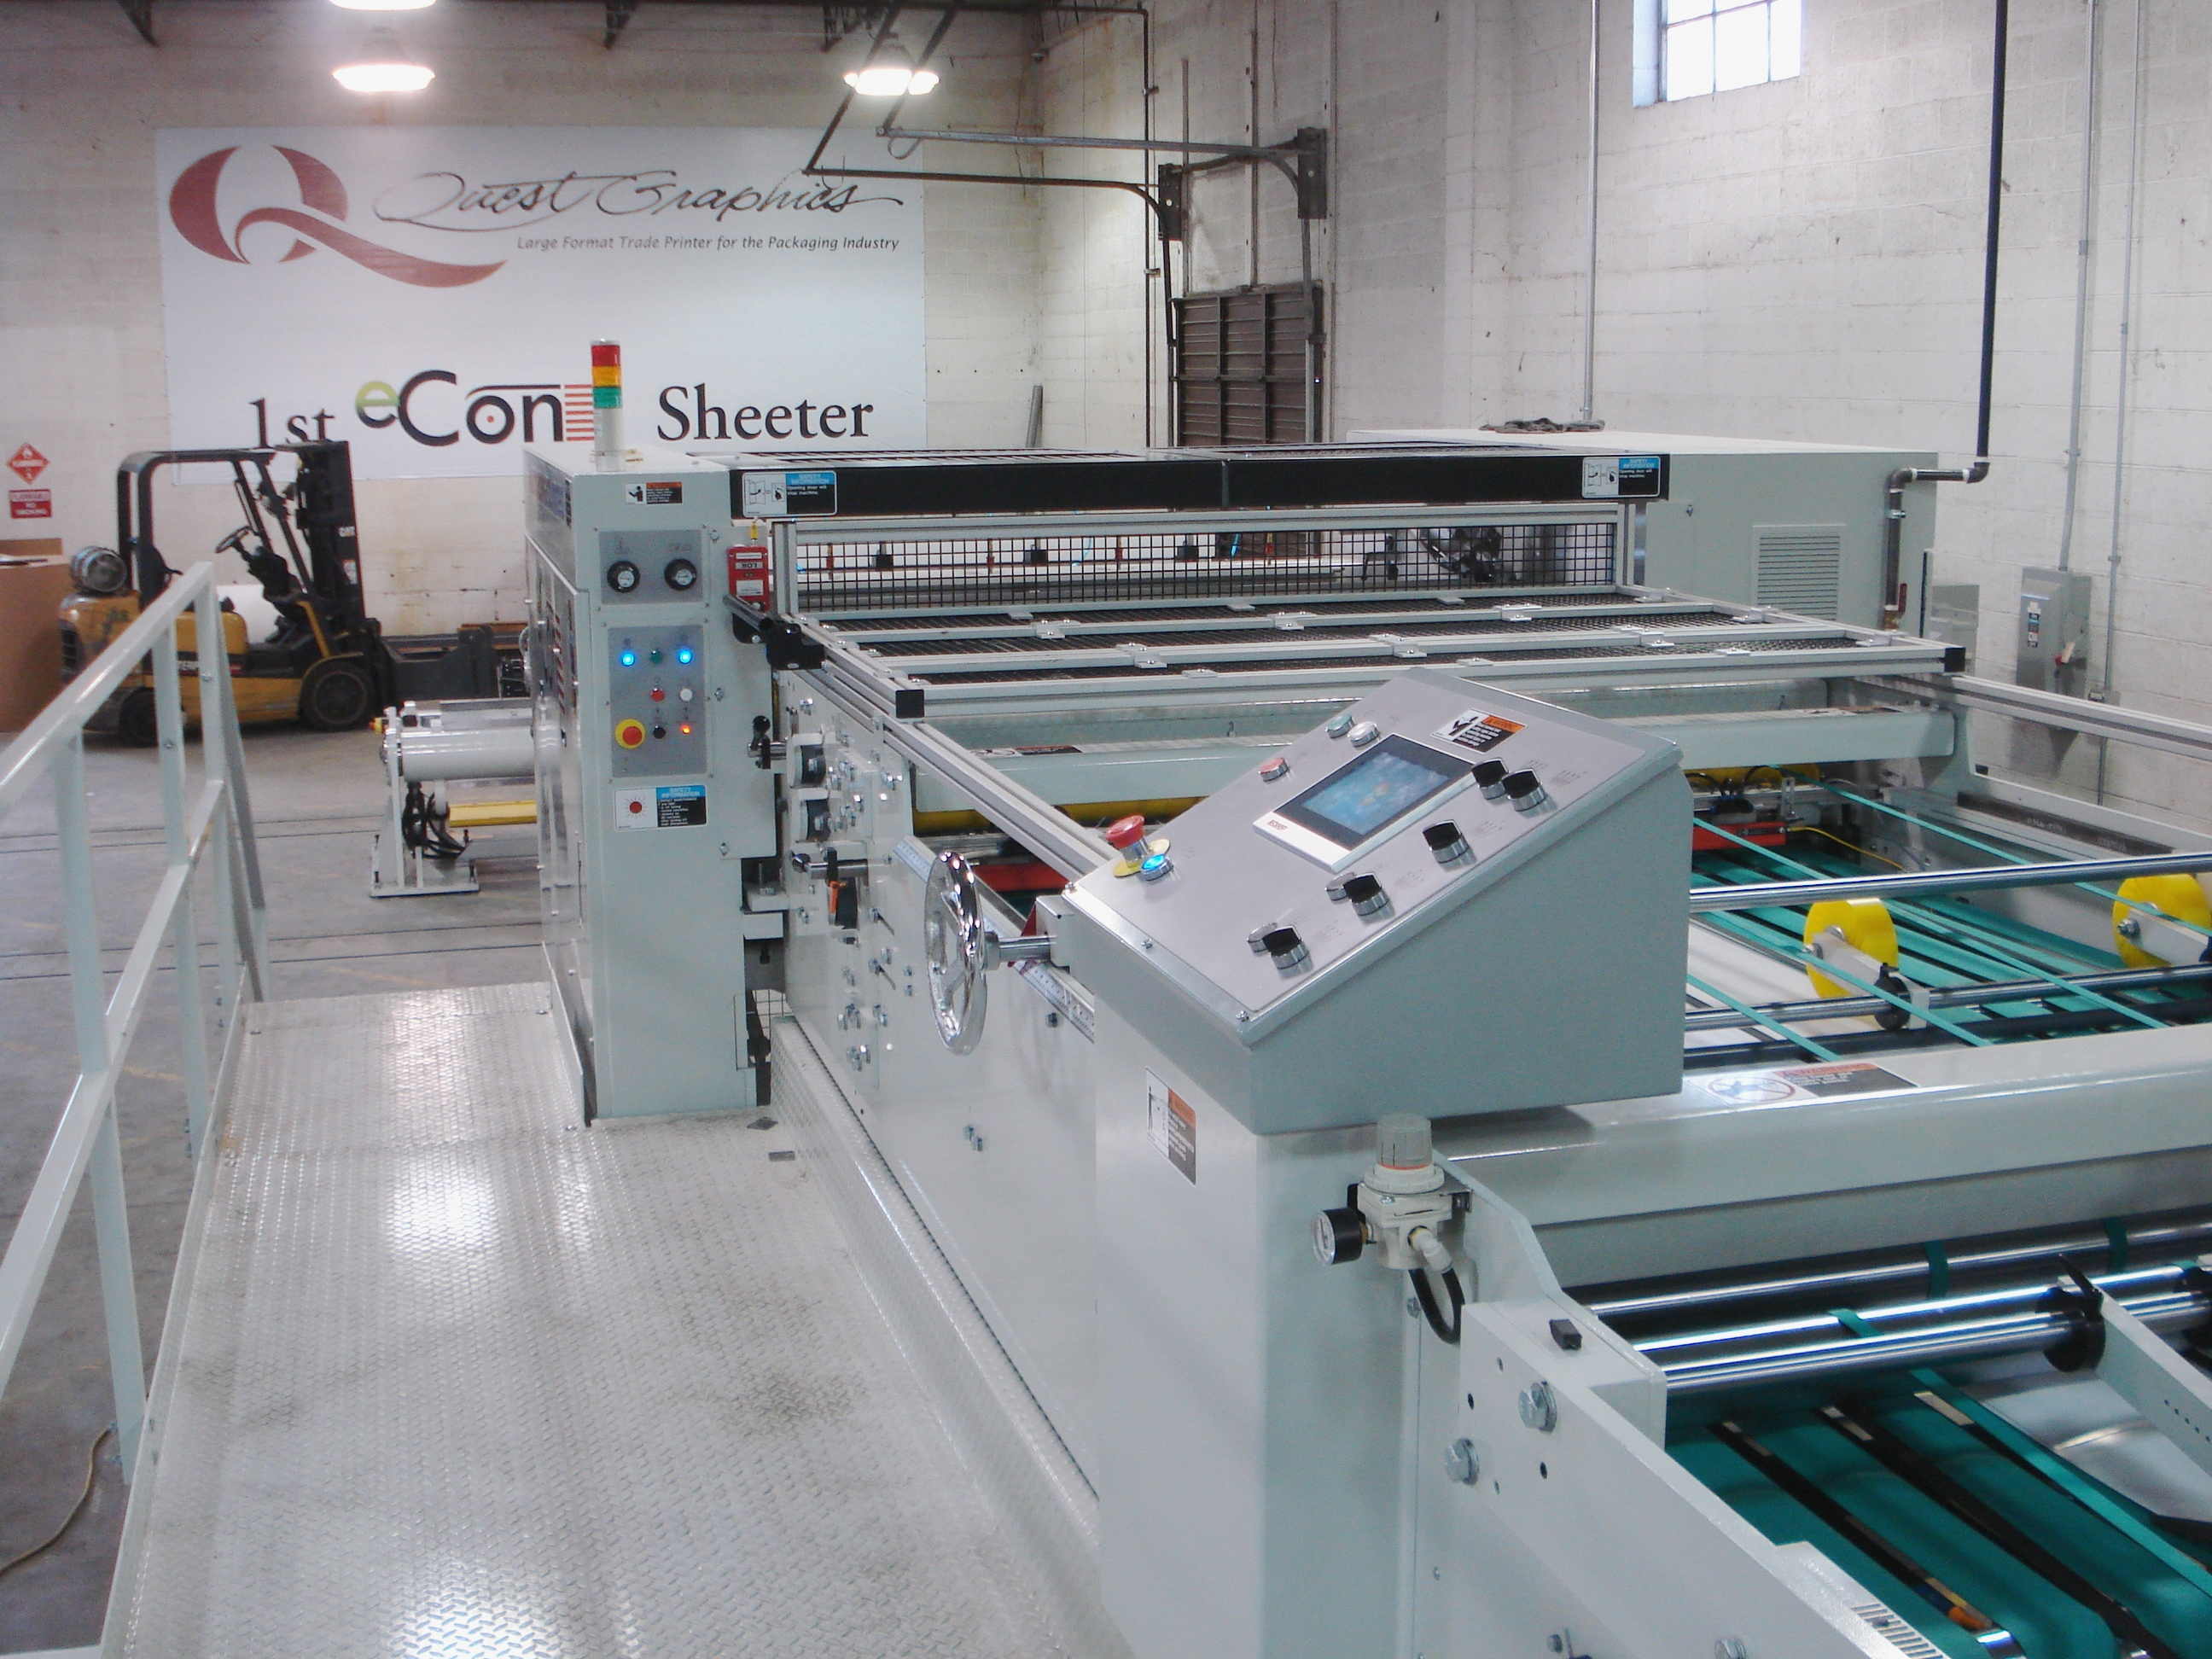 eCon Sheeter at Quest Graphics in St. Louis